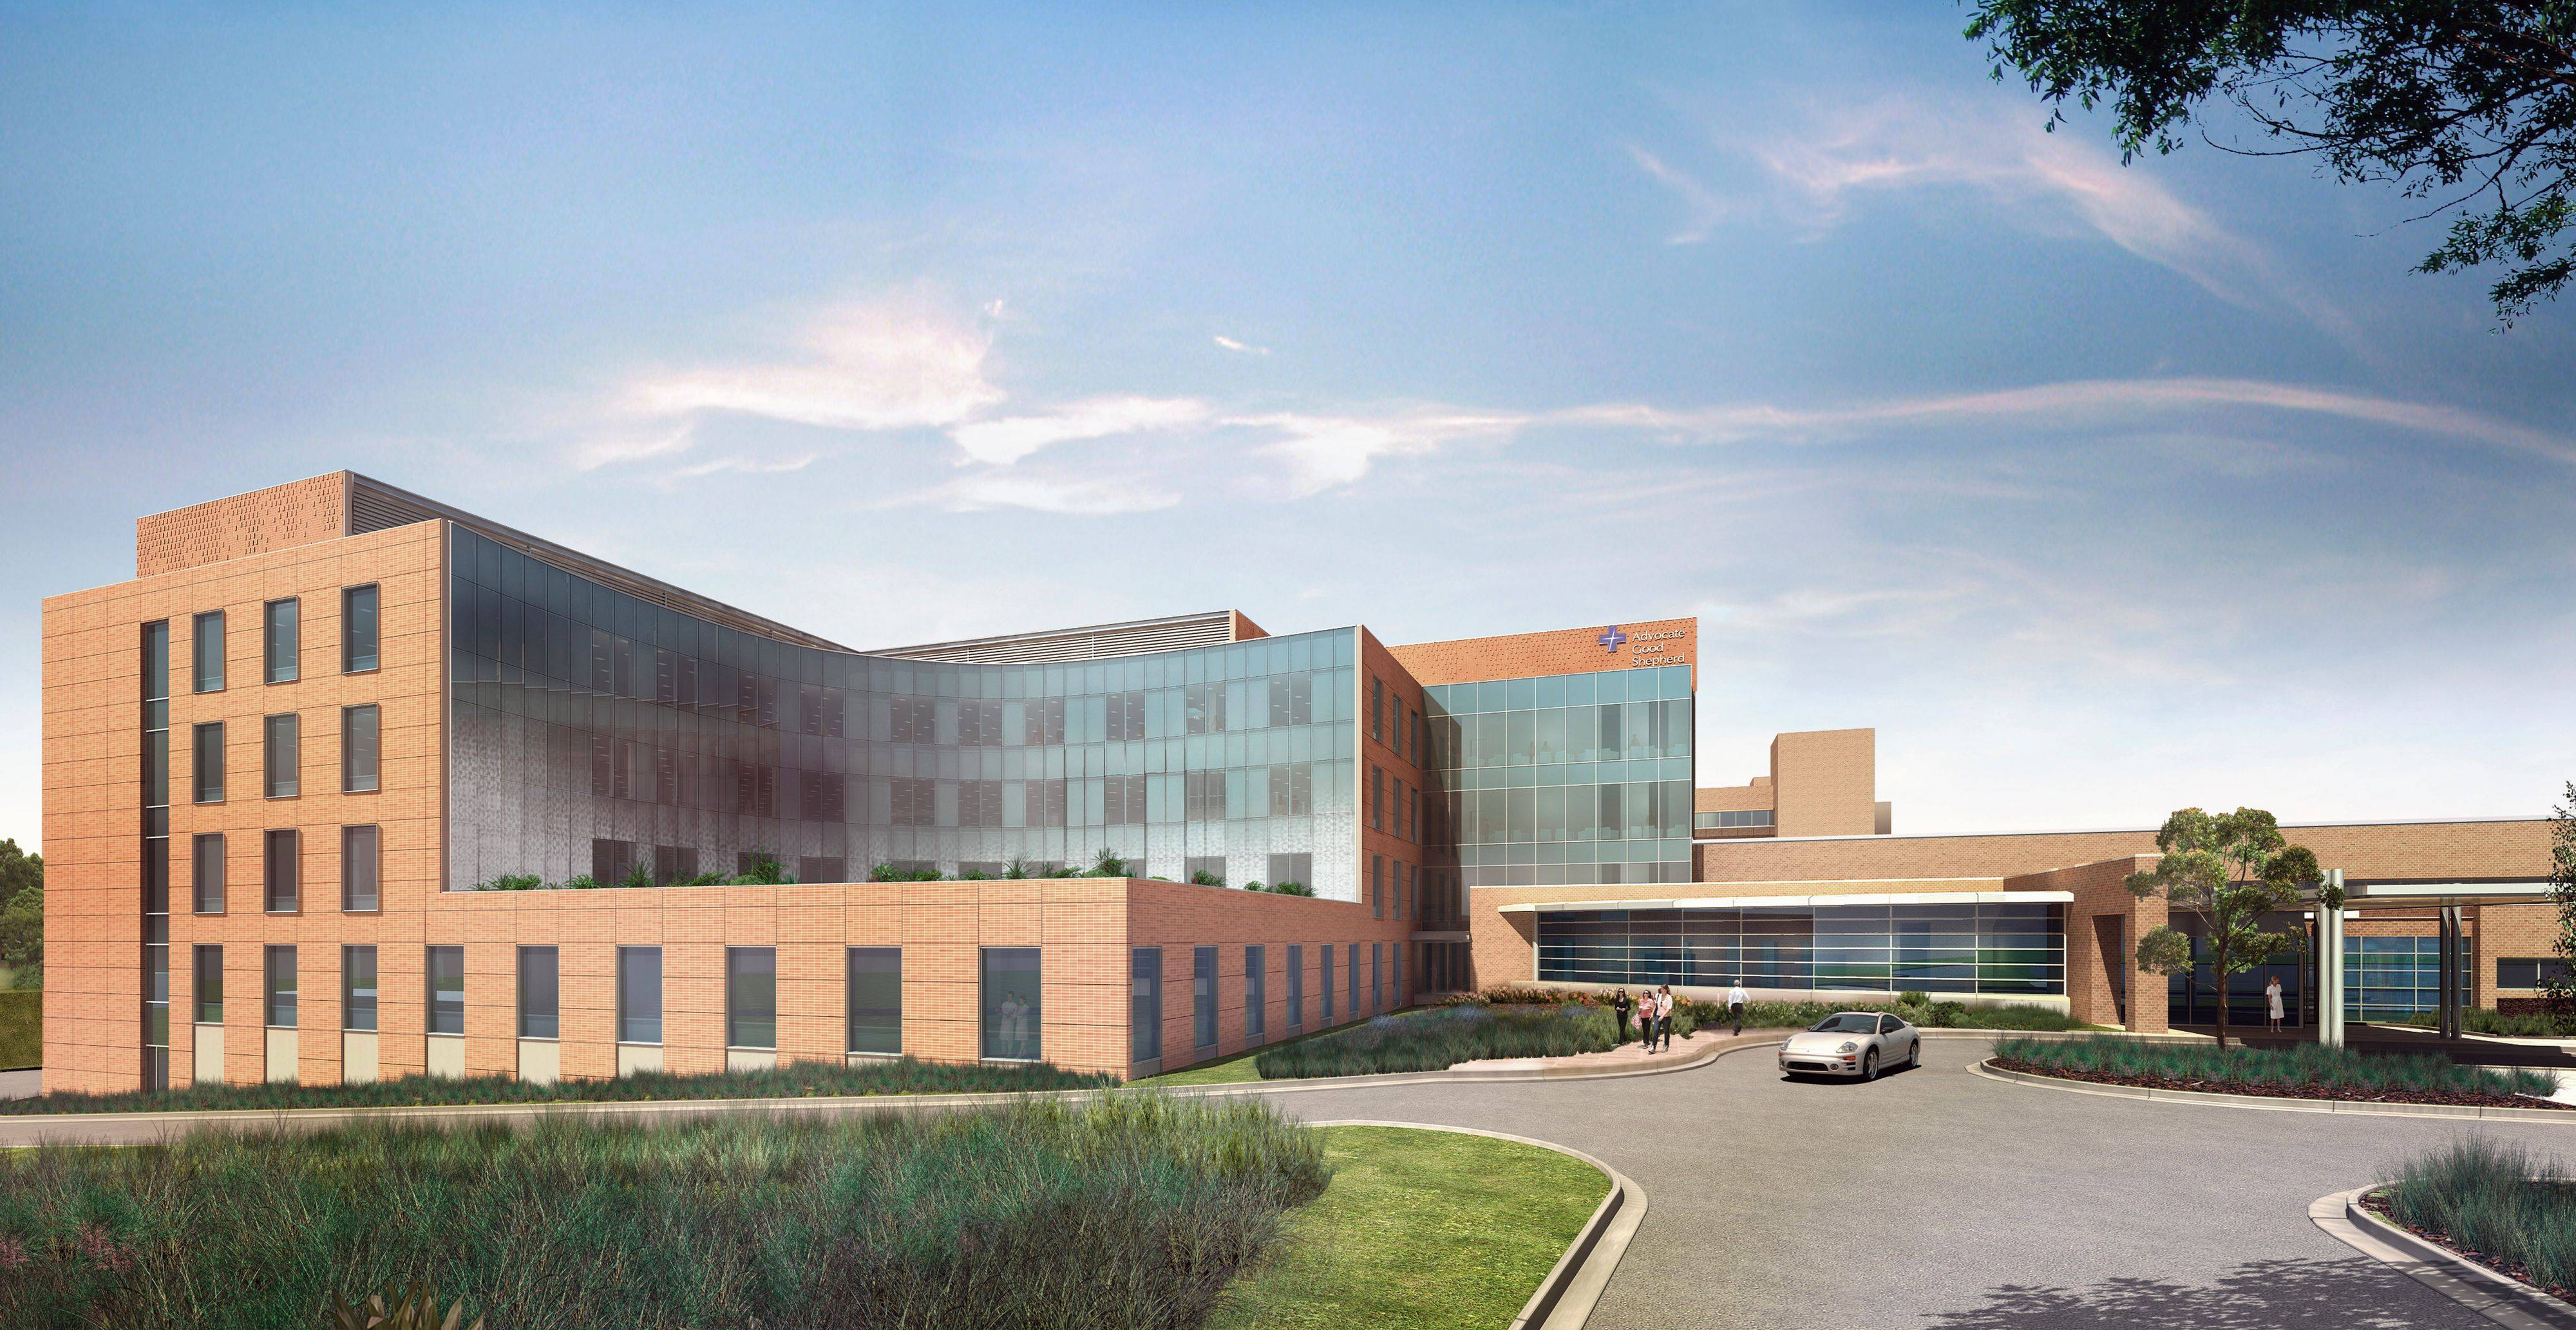 Good Shepherd Hospital plans $247 million modernization